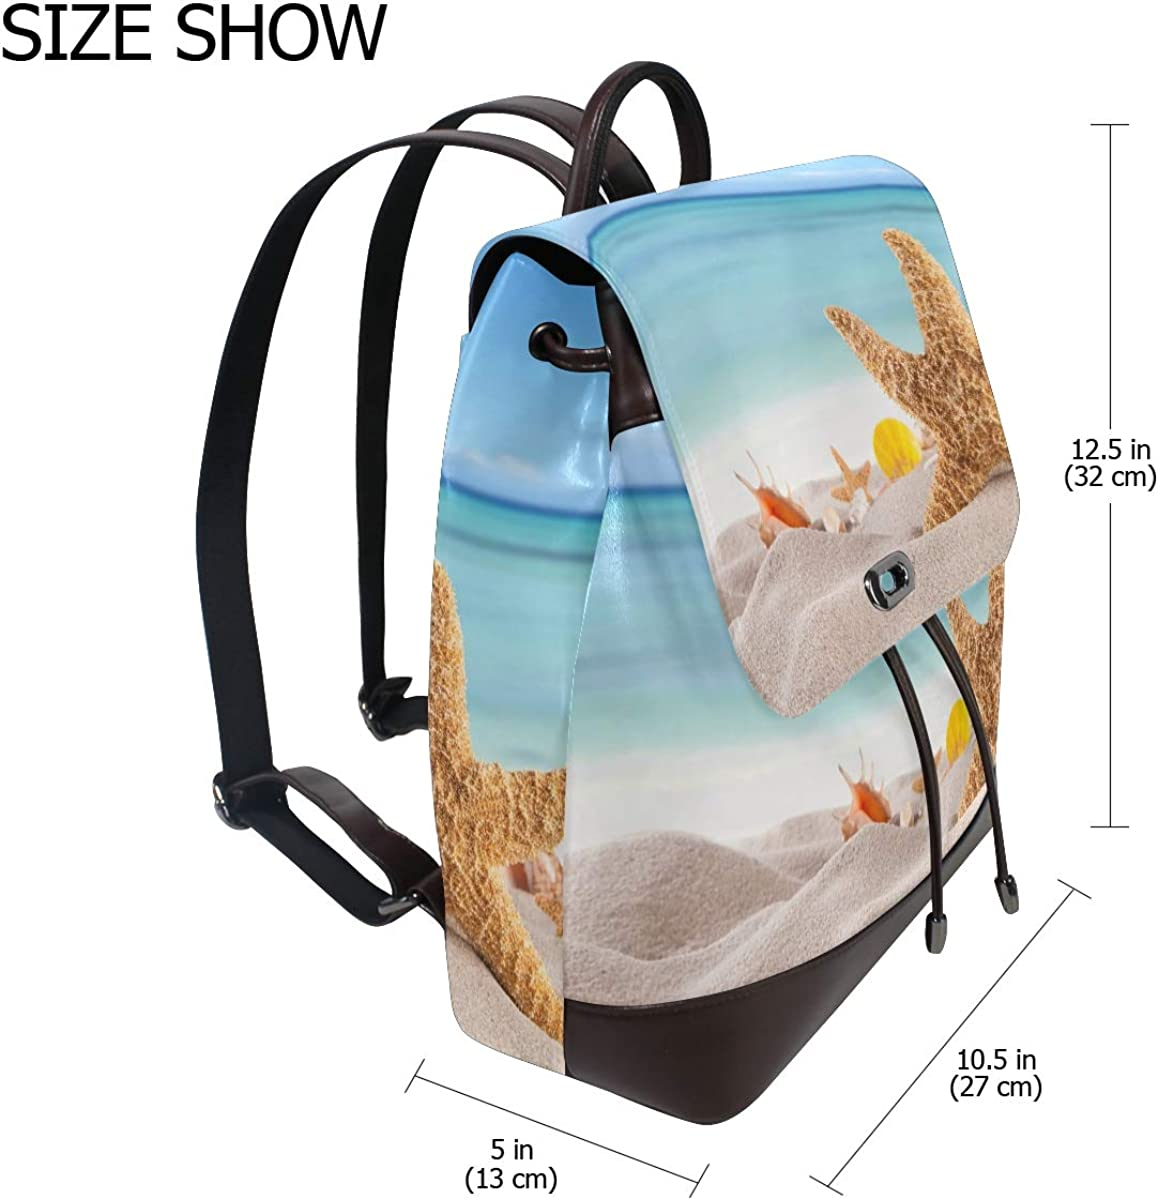 PU Leather Shoulder Bag,Sandy Summer Beach With Blur Sea Backpack,Portable Travel School Rucksack,Satchel with Top Handle